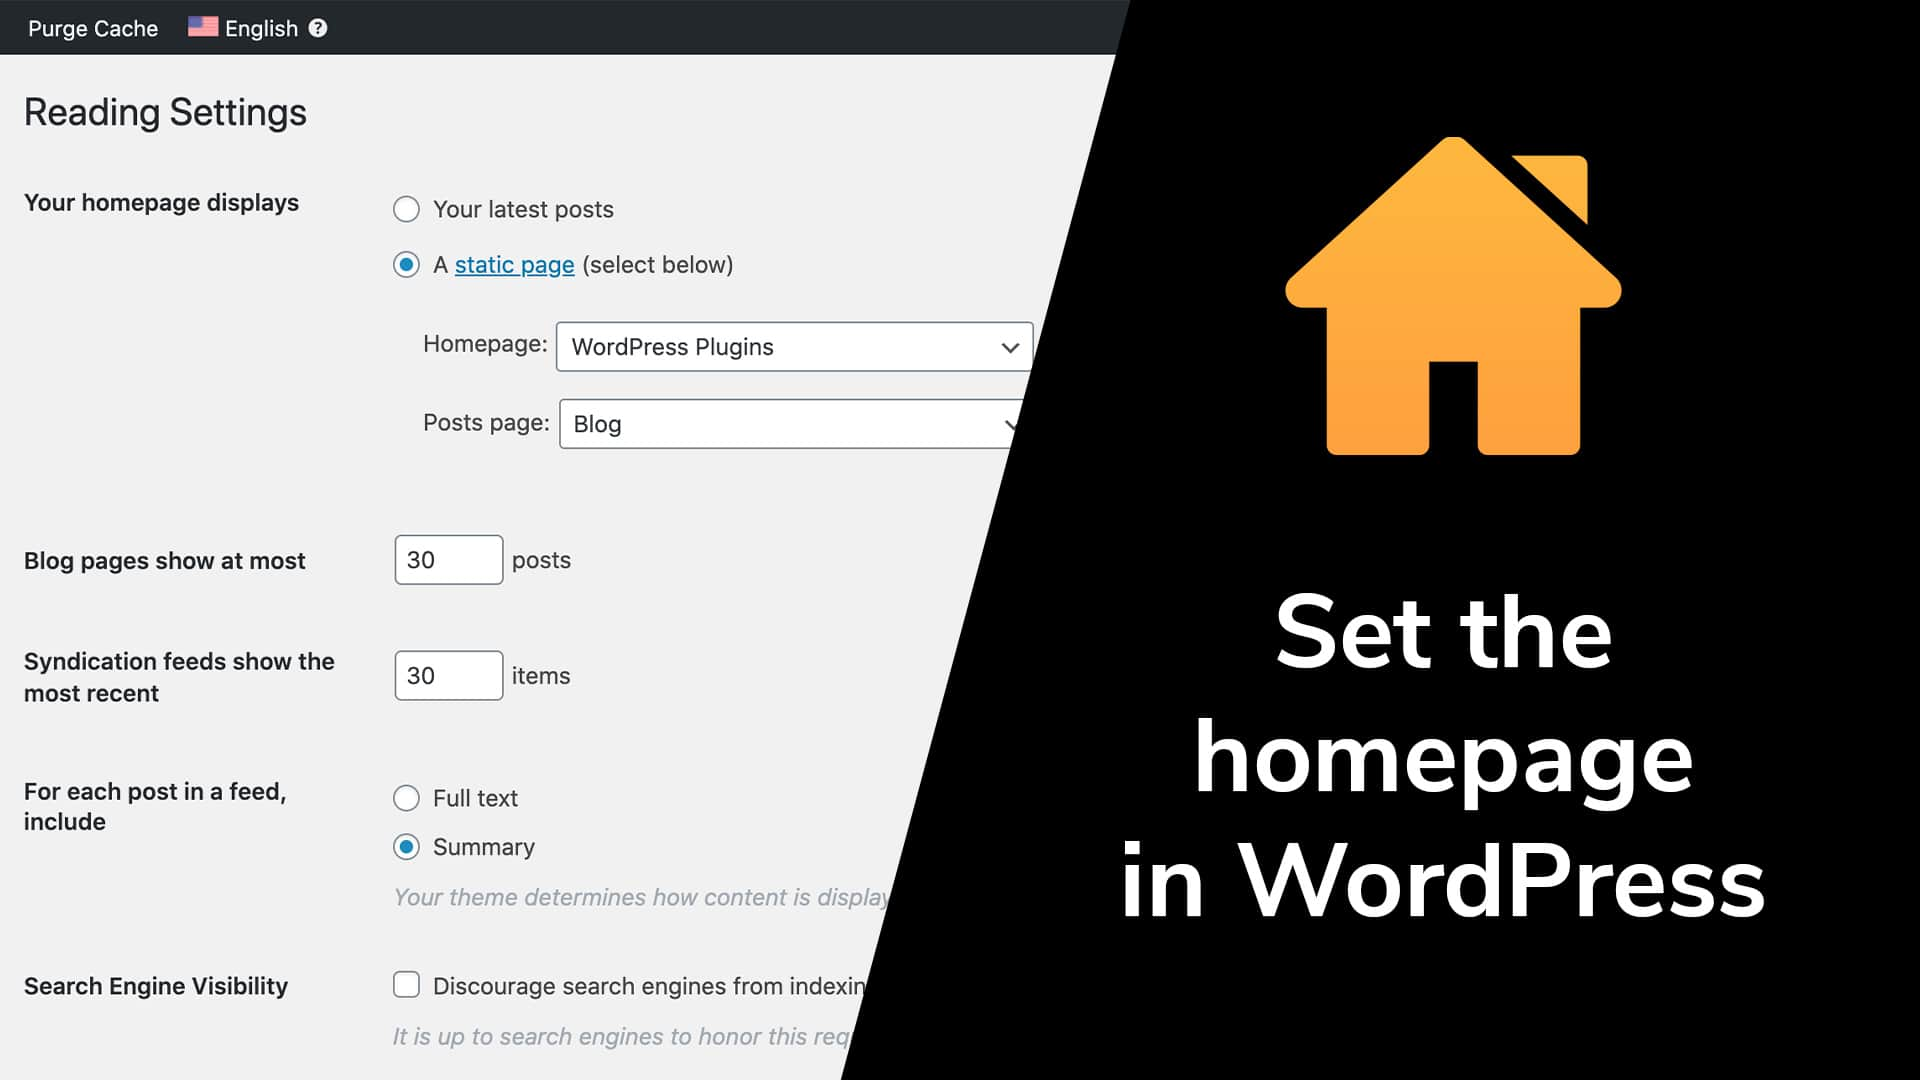 Set the homepage in WordPress